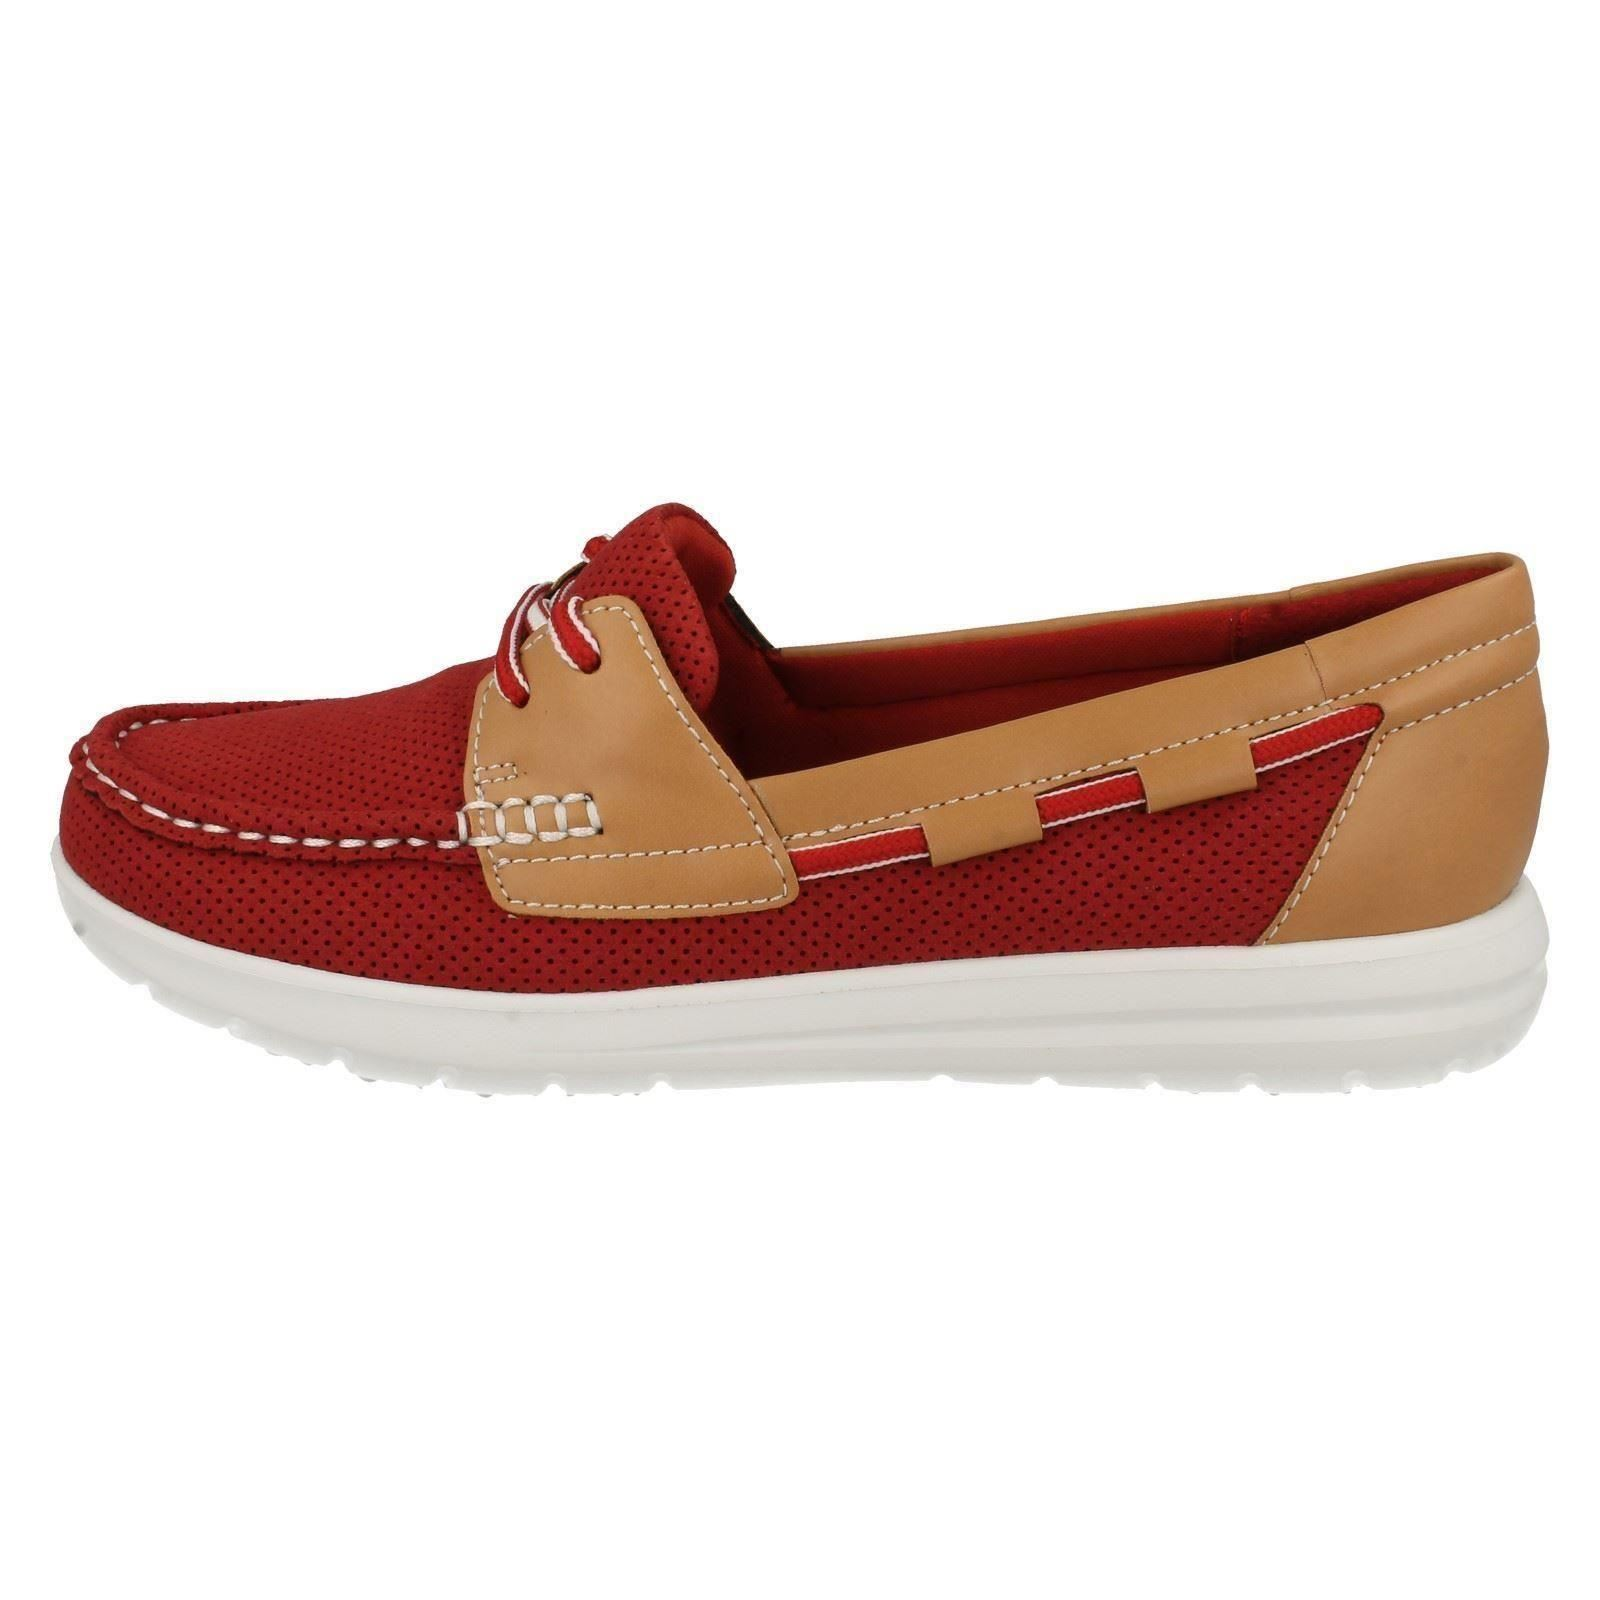 Clarks Red Vista Deck Cloud Shoes Ladies By Steppers Jocolin wgaqETW1